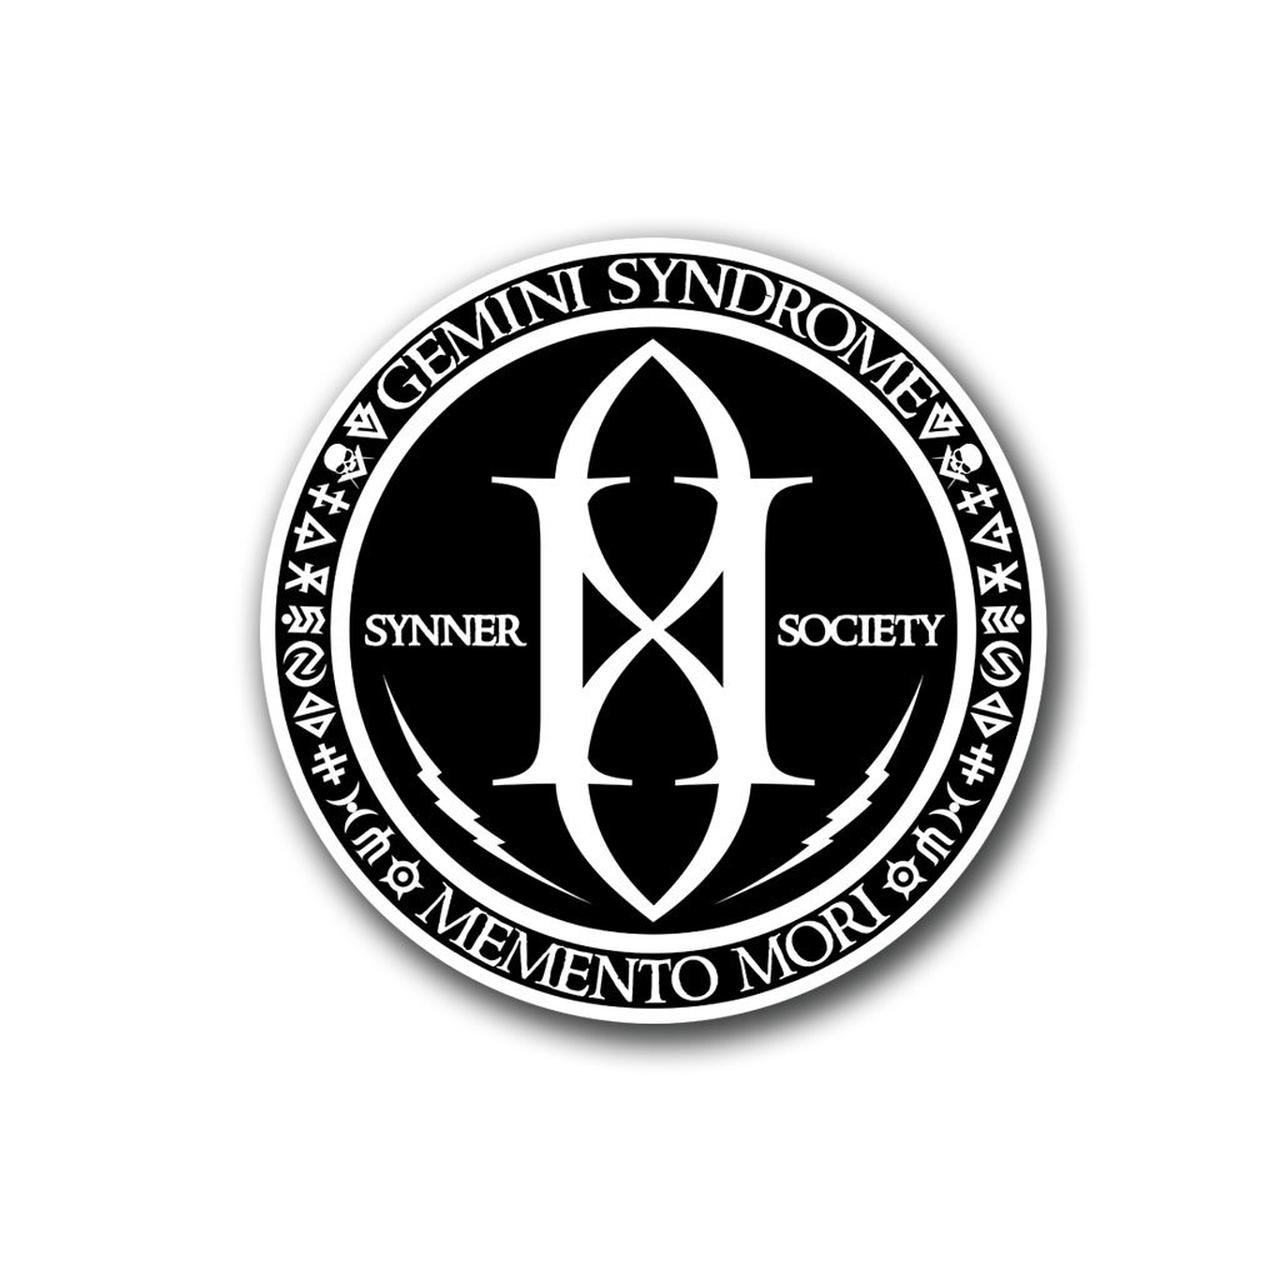 Gemini syndrome synner society patch gemini syndrome buycottarizona Gallery